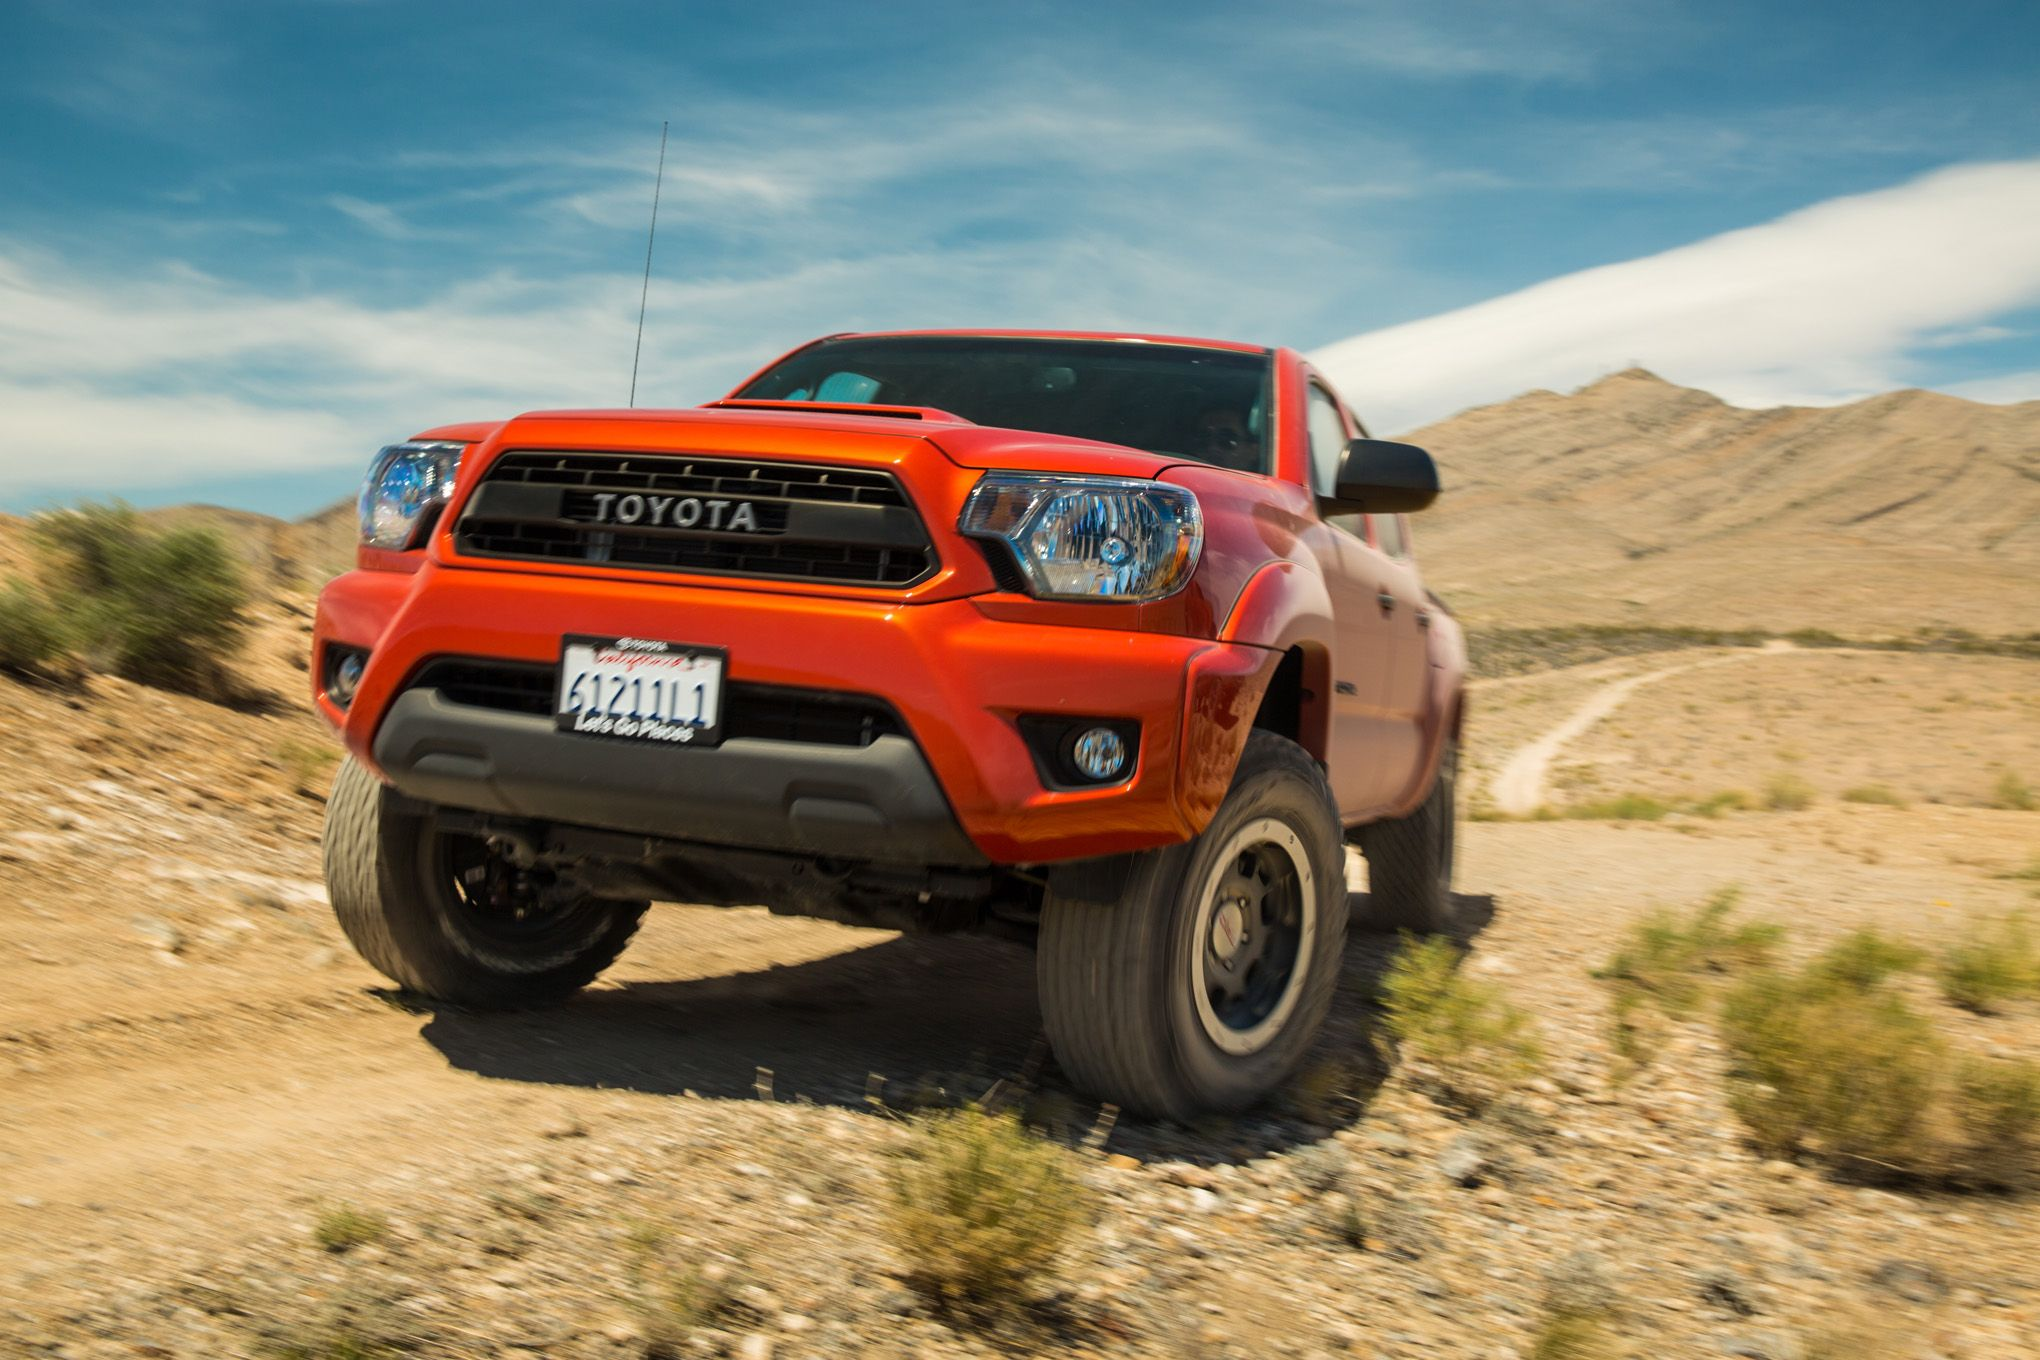 Amazing 2015 Toyota Tacoma TRD Concept Car Wallpapers   Http://wallsauto.com/2015  Toyota Tacoma Trd Concept Car Wallpapers/